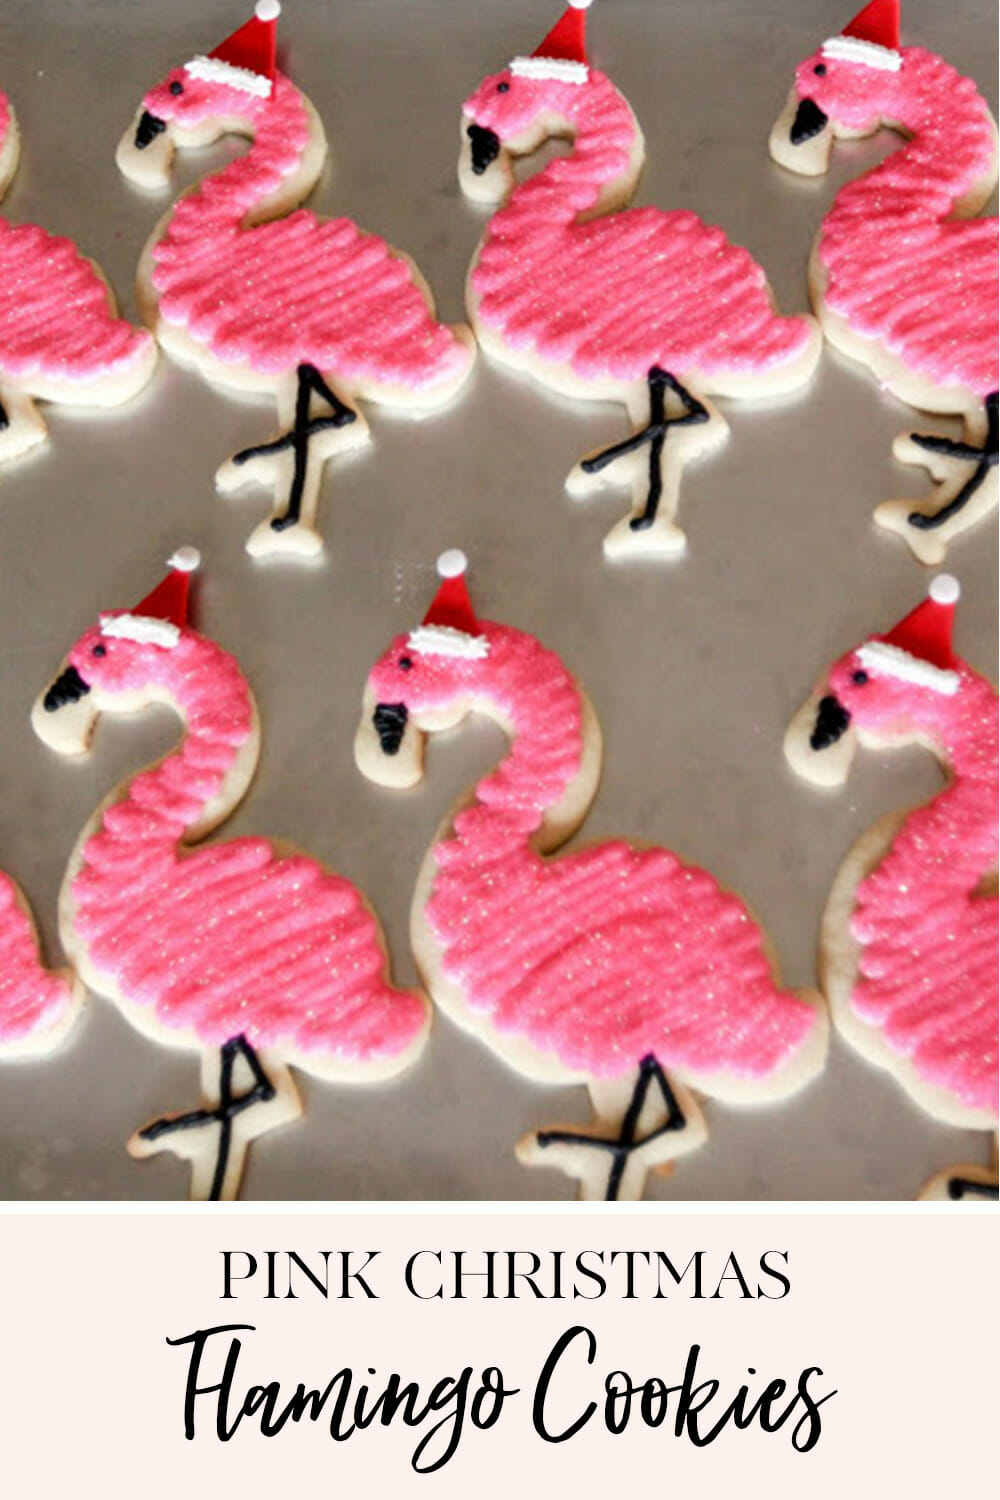 These Pink Christmas Flamingo Cookies are a fun twist on a holiday treat! Decorate and package them up for your next holiday party. || JennyCookies.com #christmascookies #holidaydesserts #christmascookies